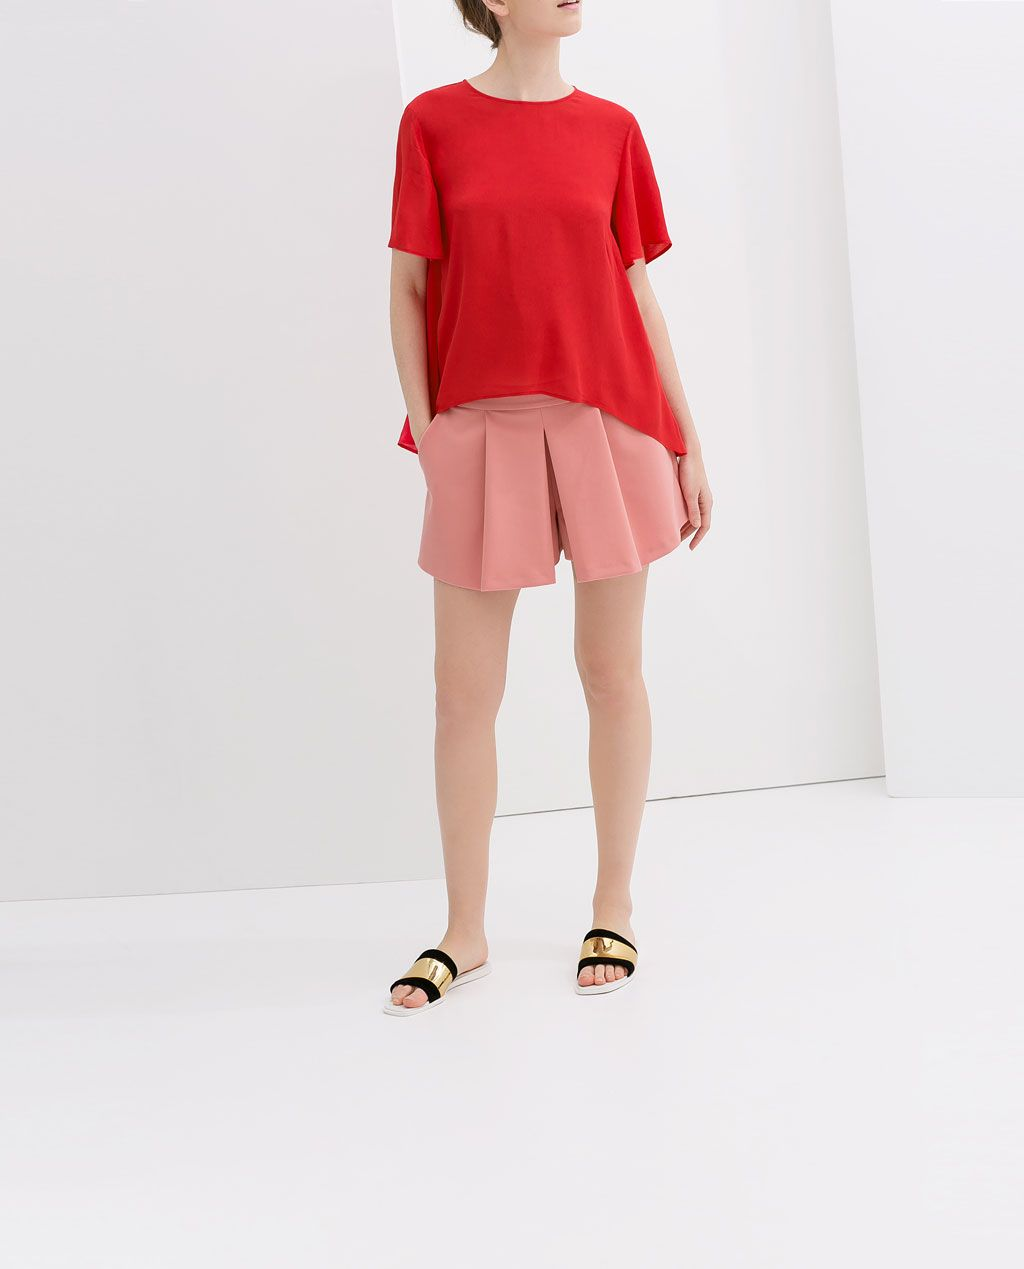 ZARA - NEW THIS WEEK - LOOSE FIT BLOUSE